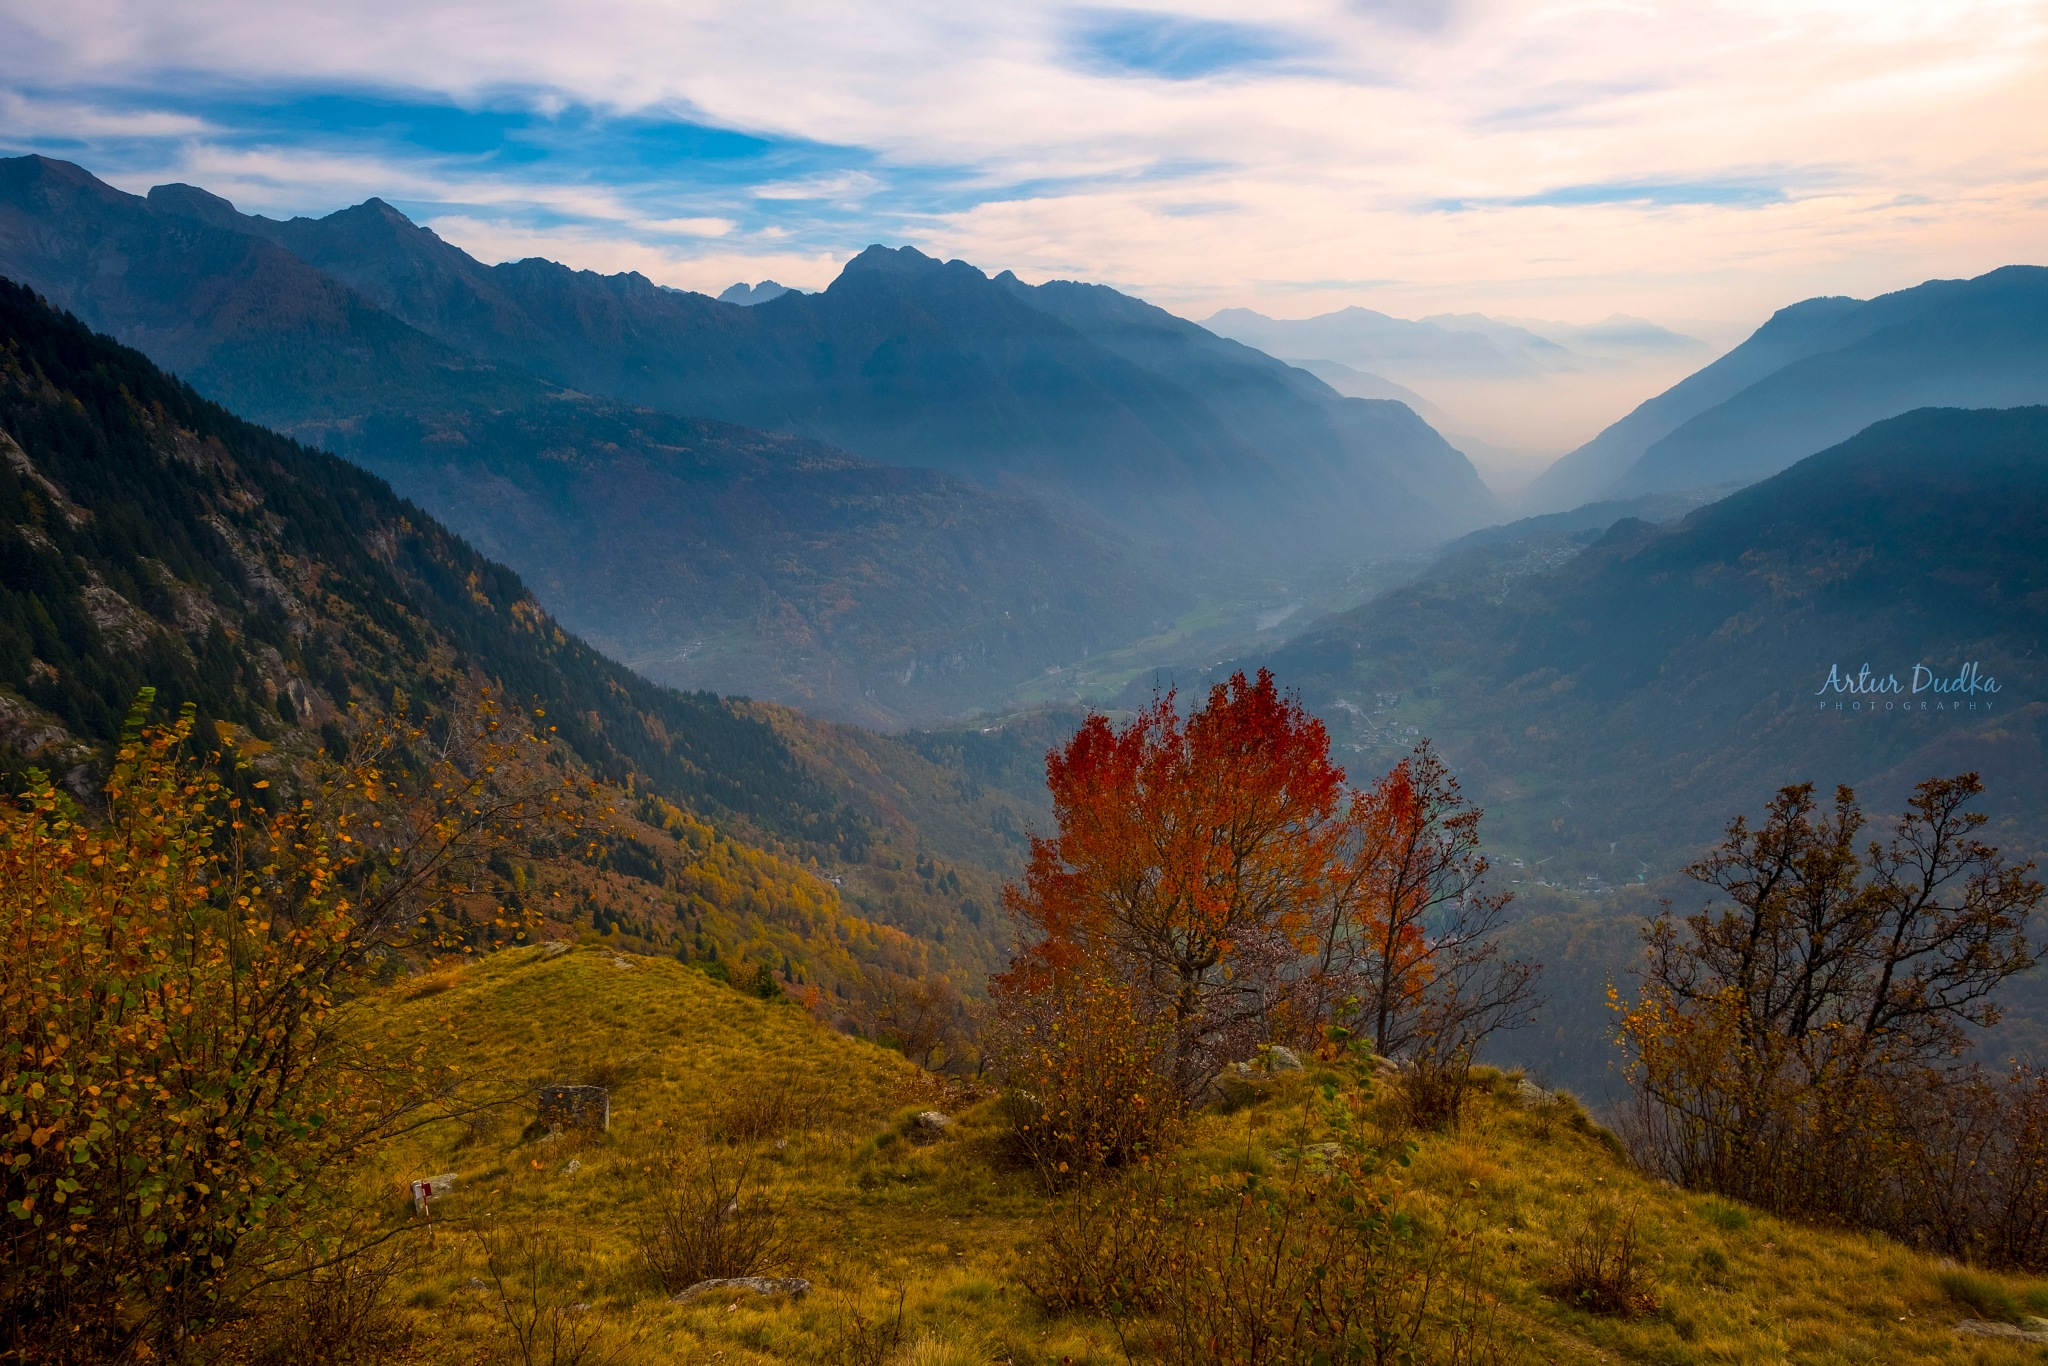 Fall in the Devero Valley by Artur Dudka